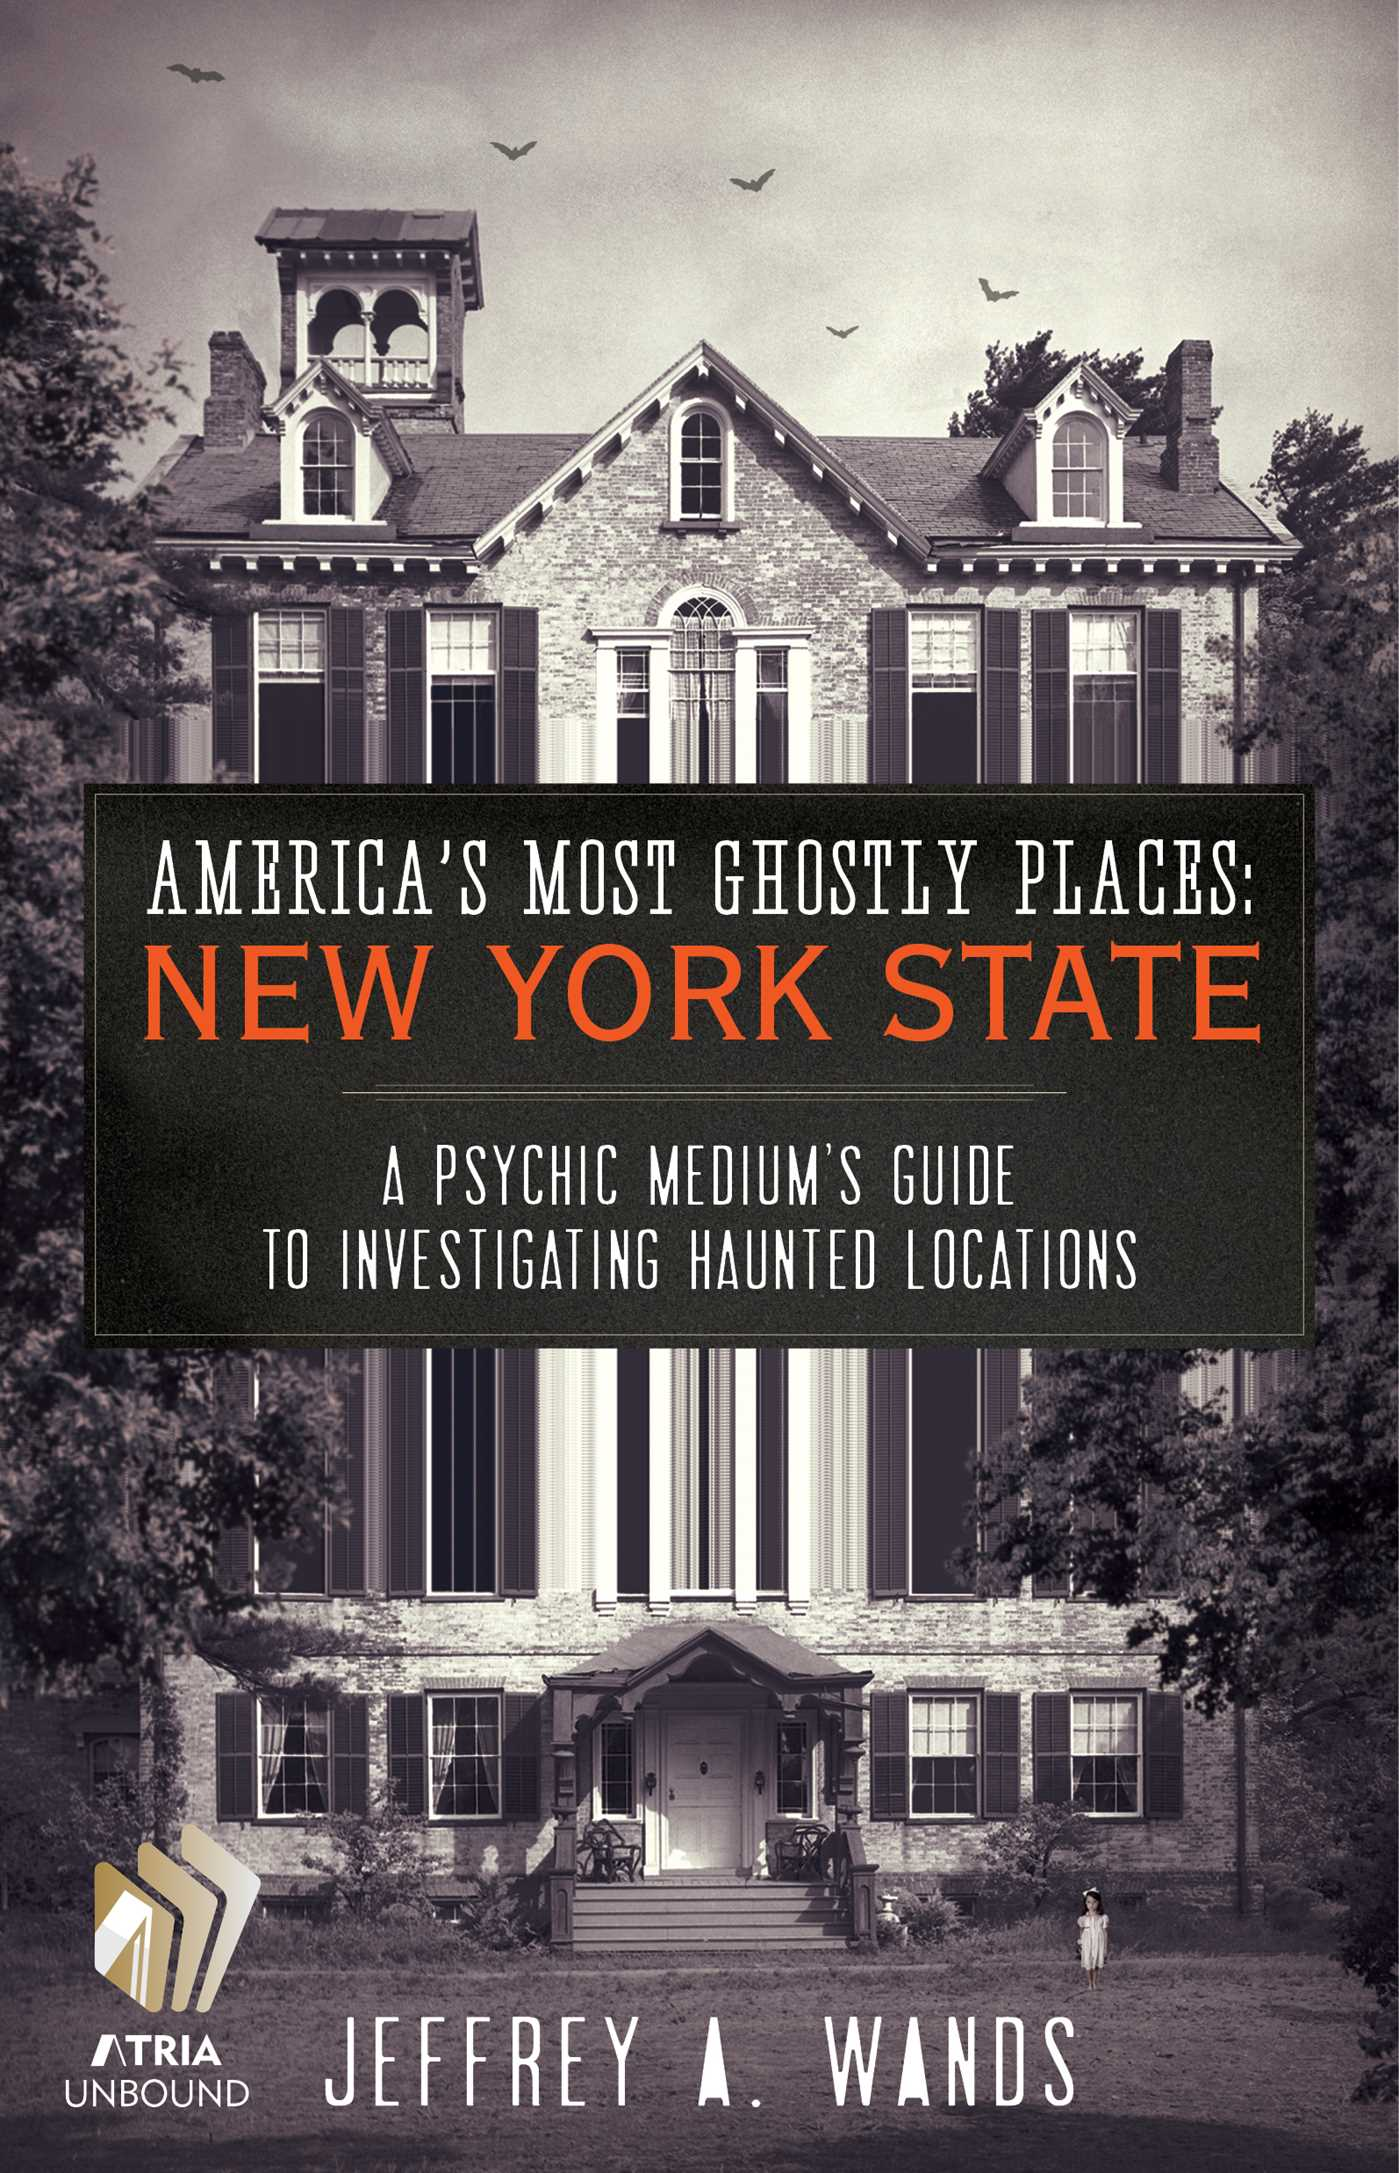 Americas most ghostly places new york state 9781451685169 hr